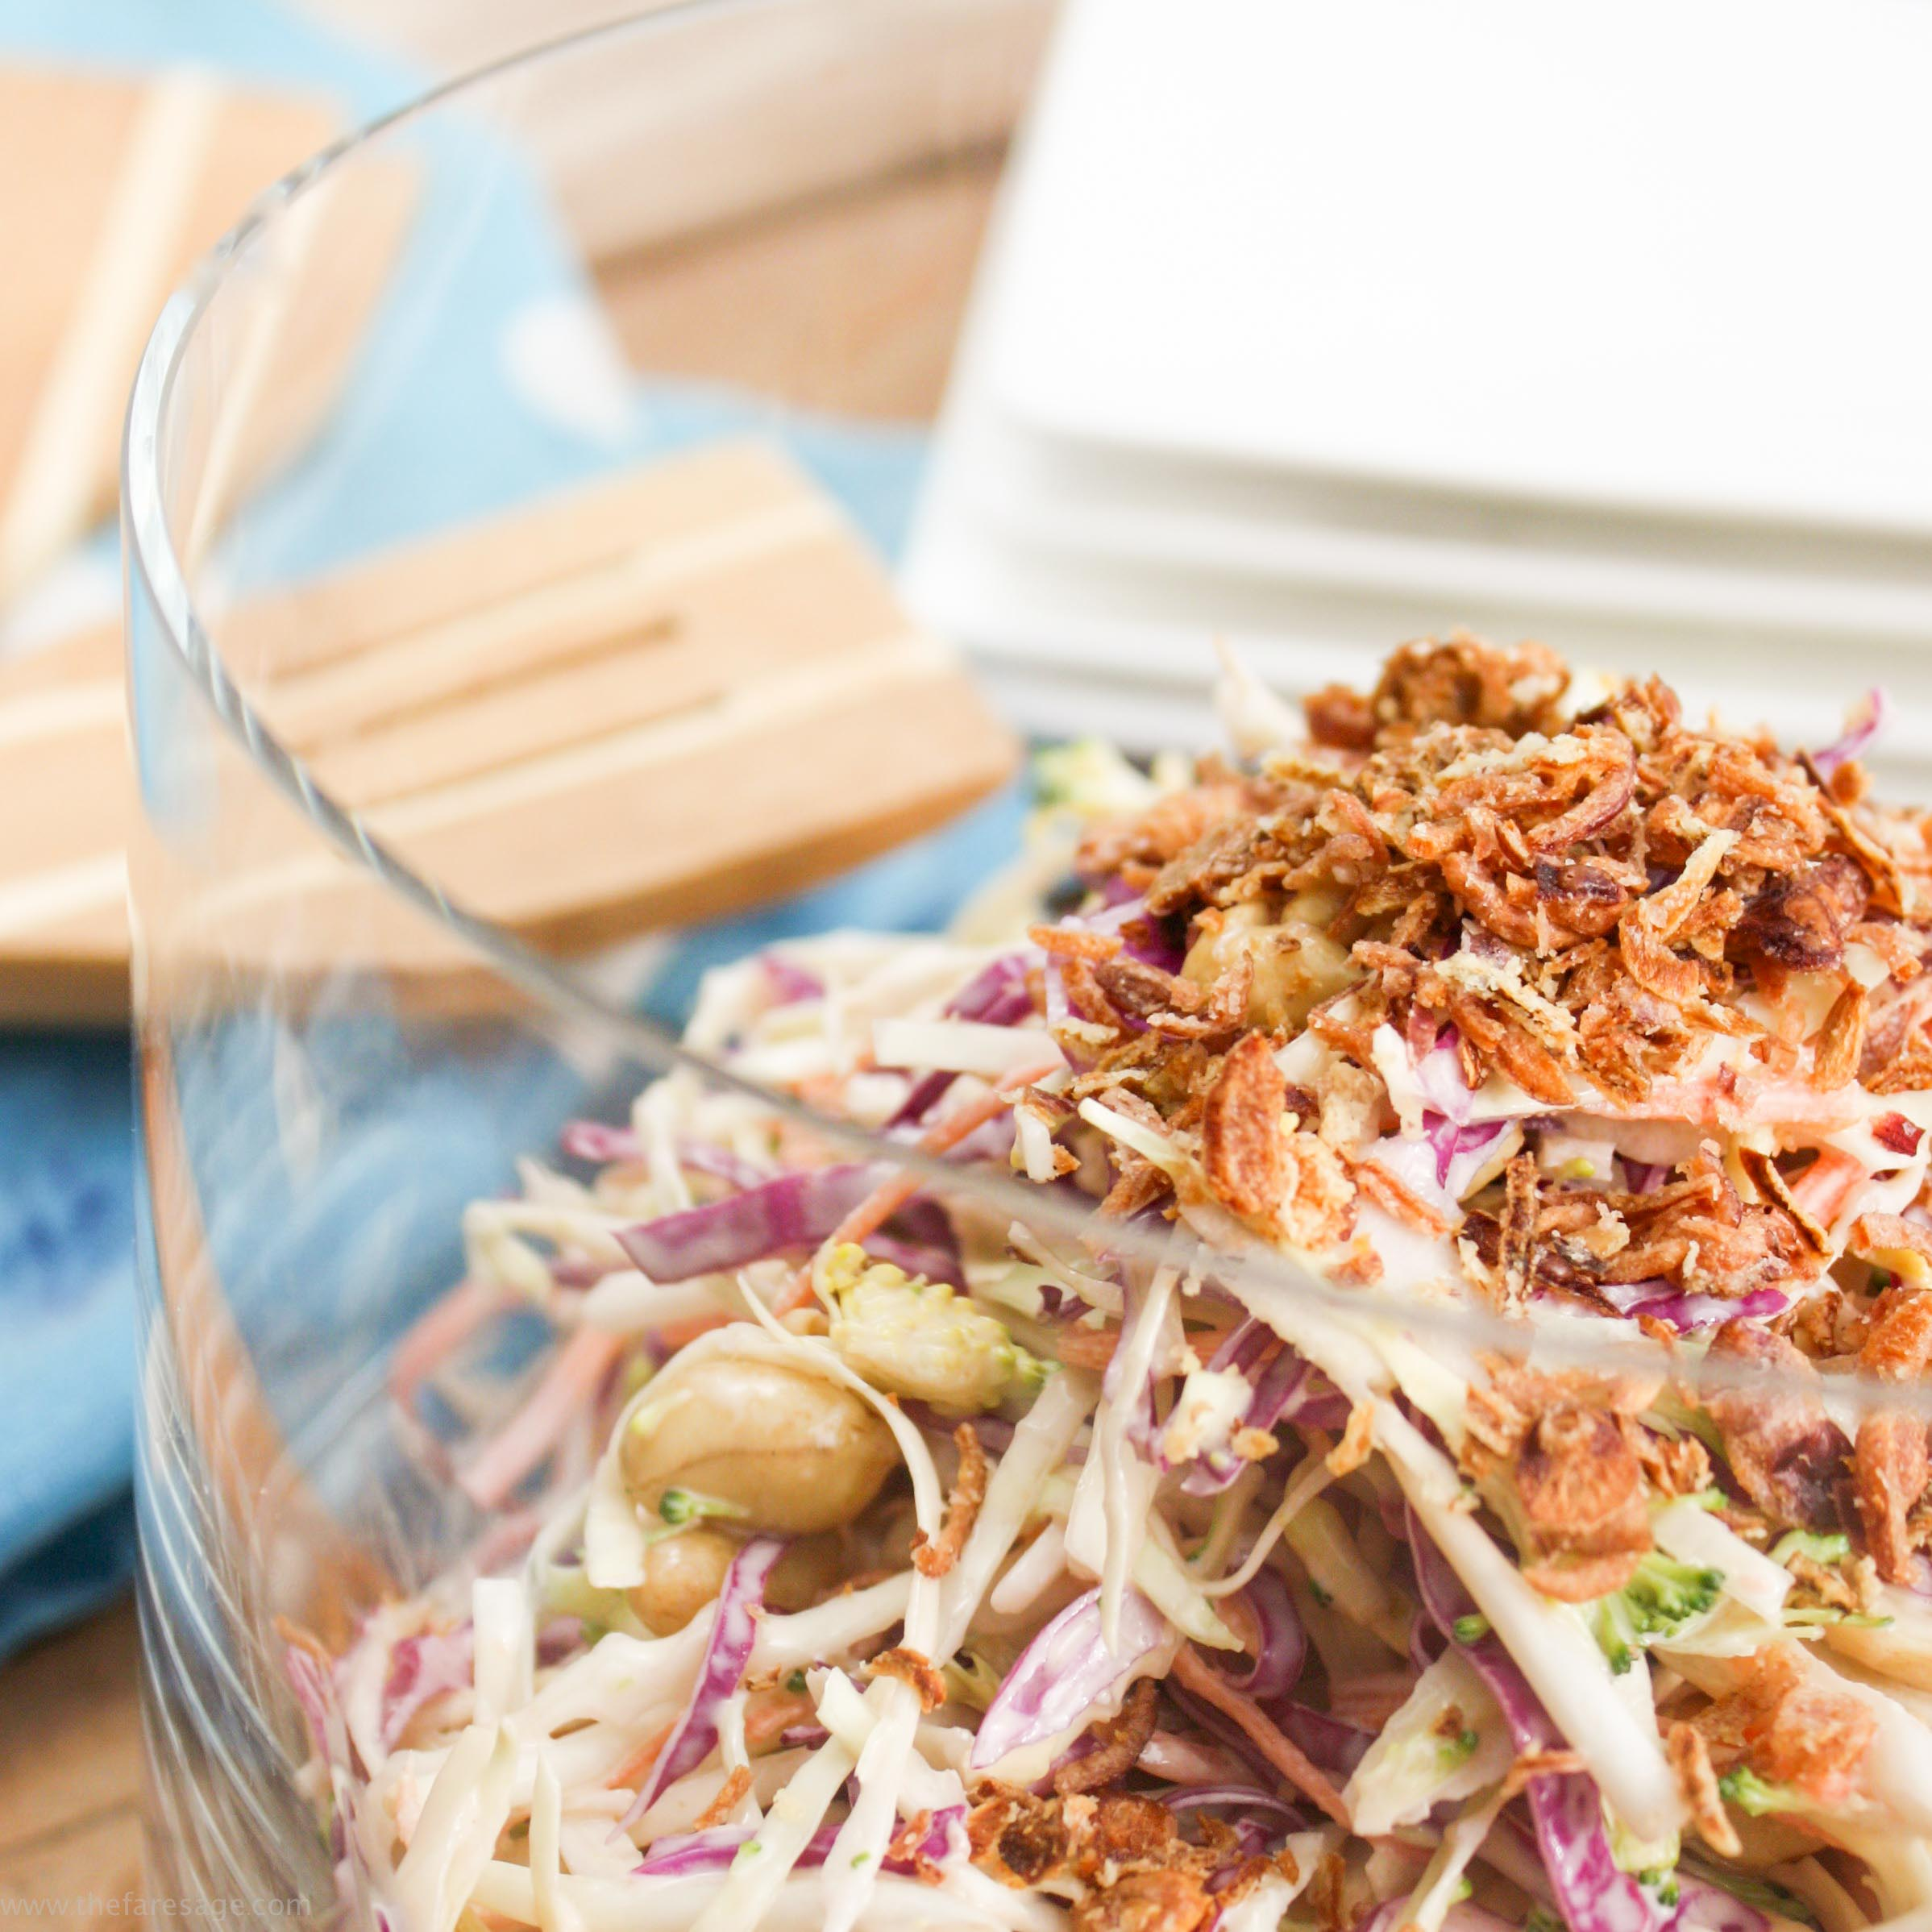 Cabbage for the winter with horseradish - spicy and tasty